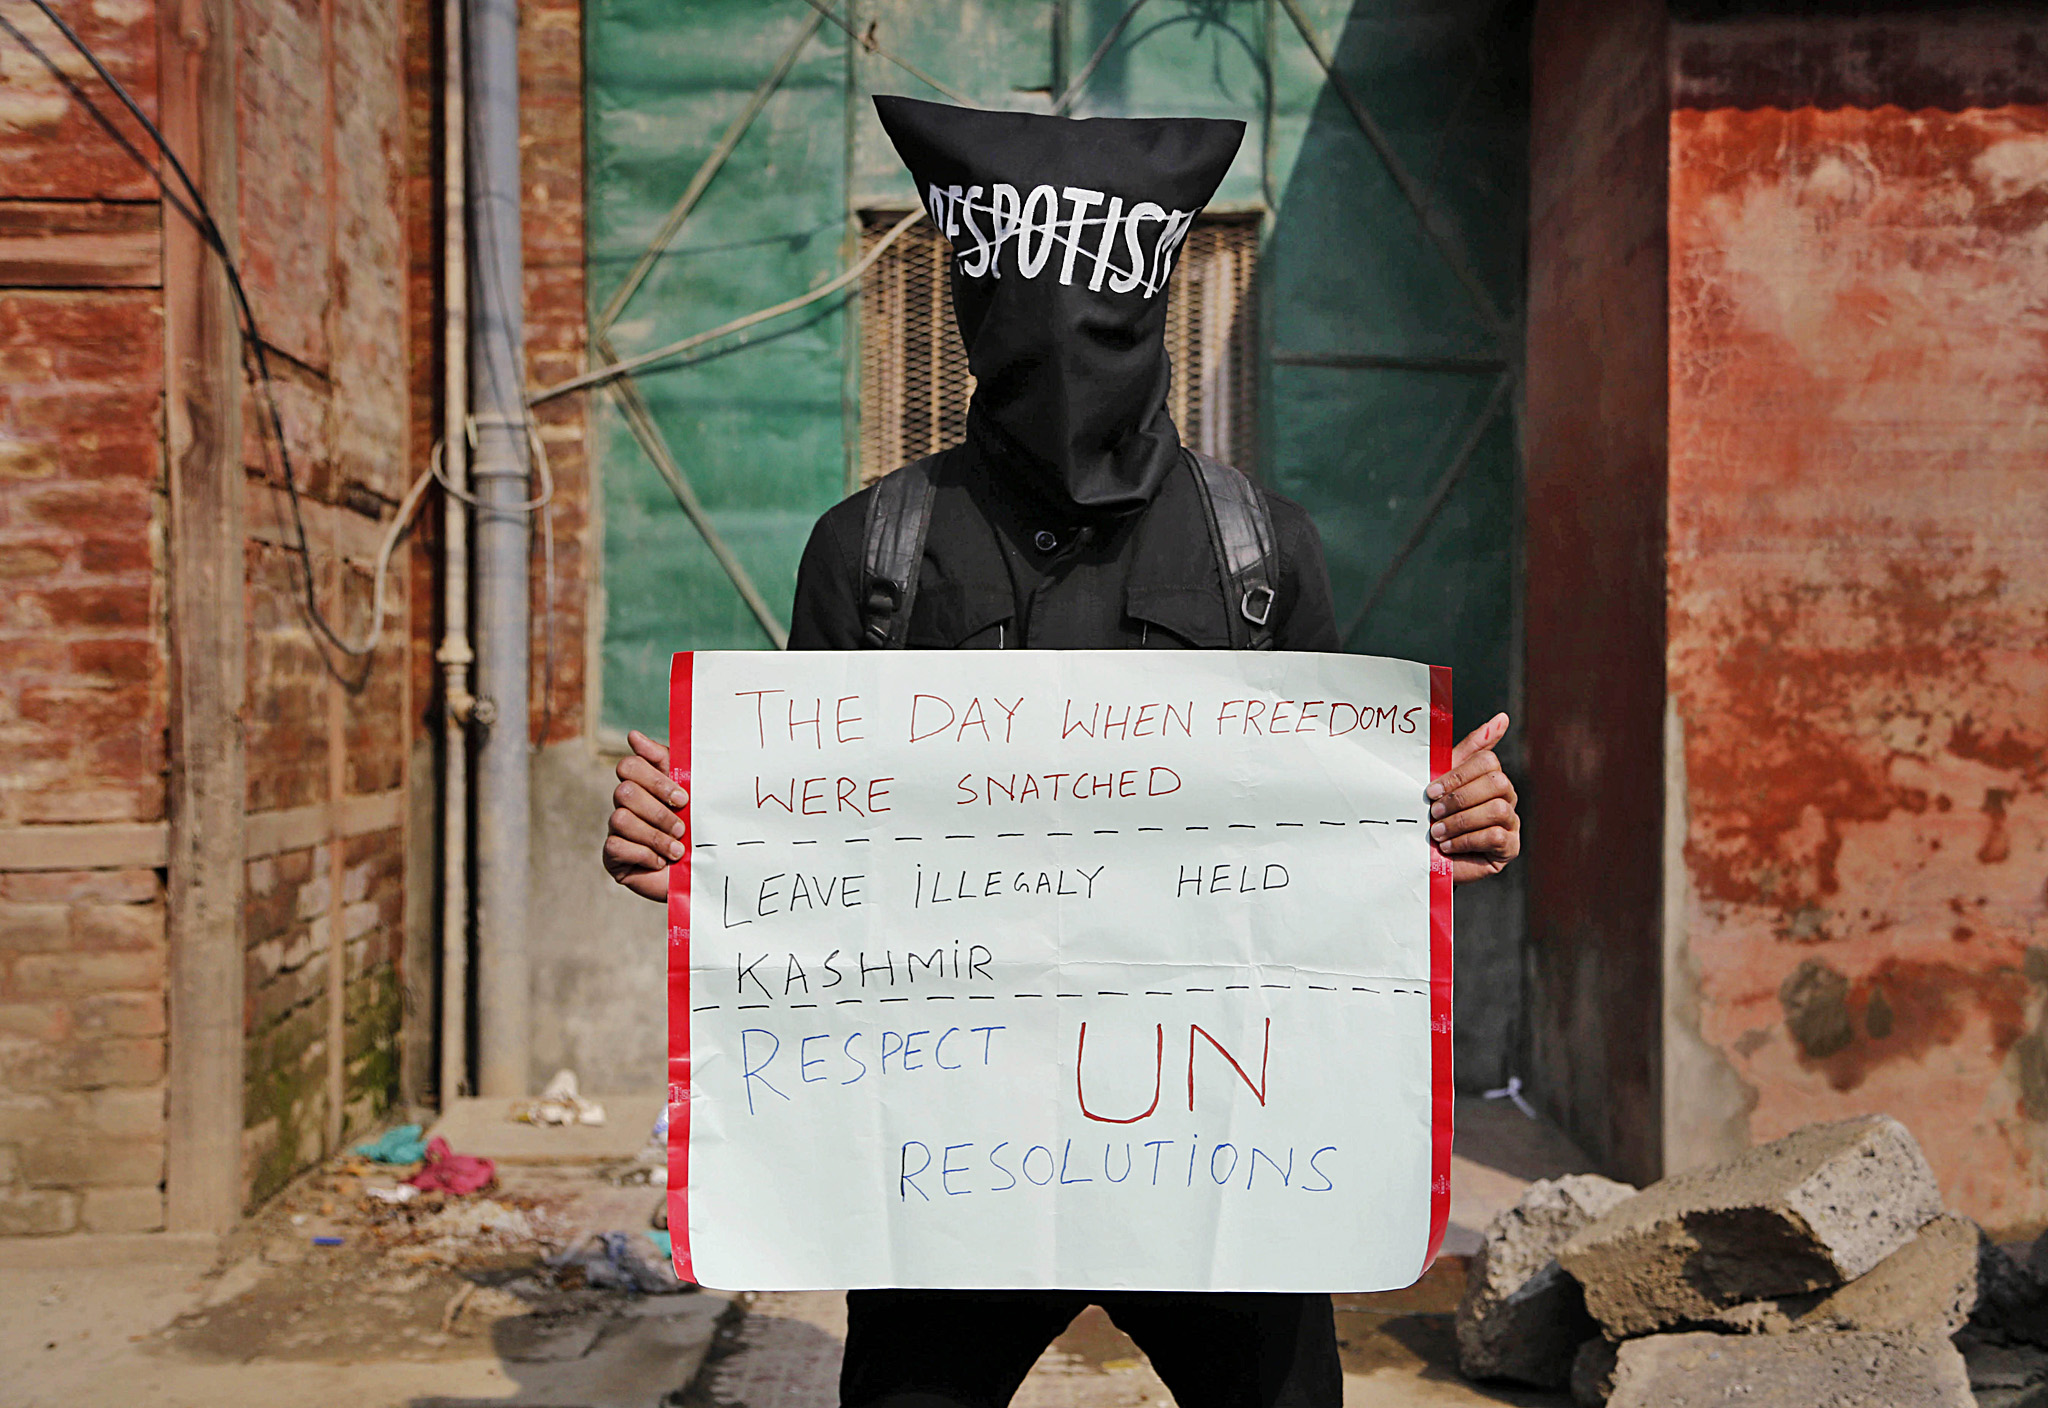 A masked Kashmiri protester stands with a placard during a protest in Srinagar, India, Monday, Oct. 27, 2014. Separatists groups in Kashmir called a general strike Monday to mark the anniversary of the day Indian troops took control of the region in 1947. (AP Photo/Mukhtar Khan)